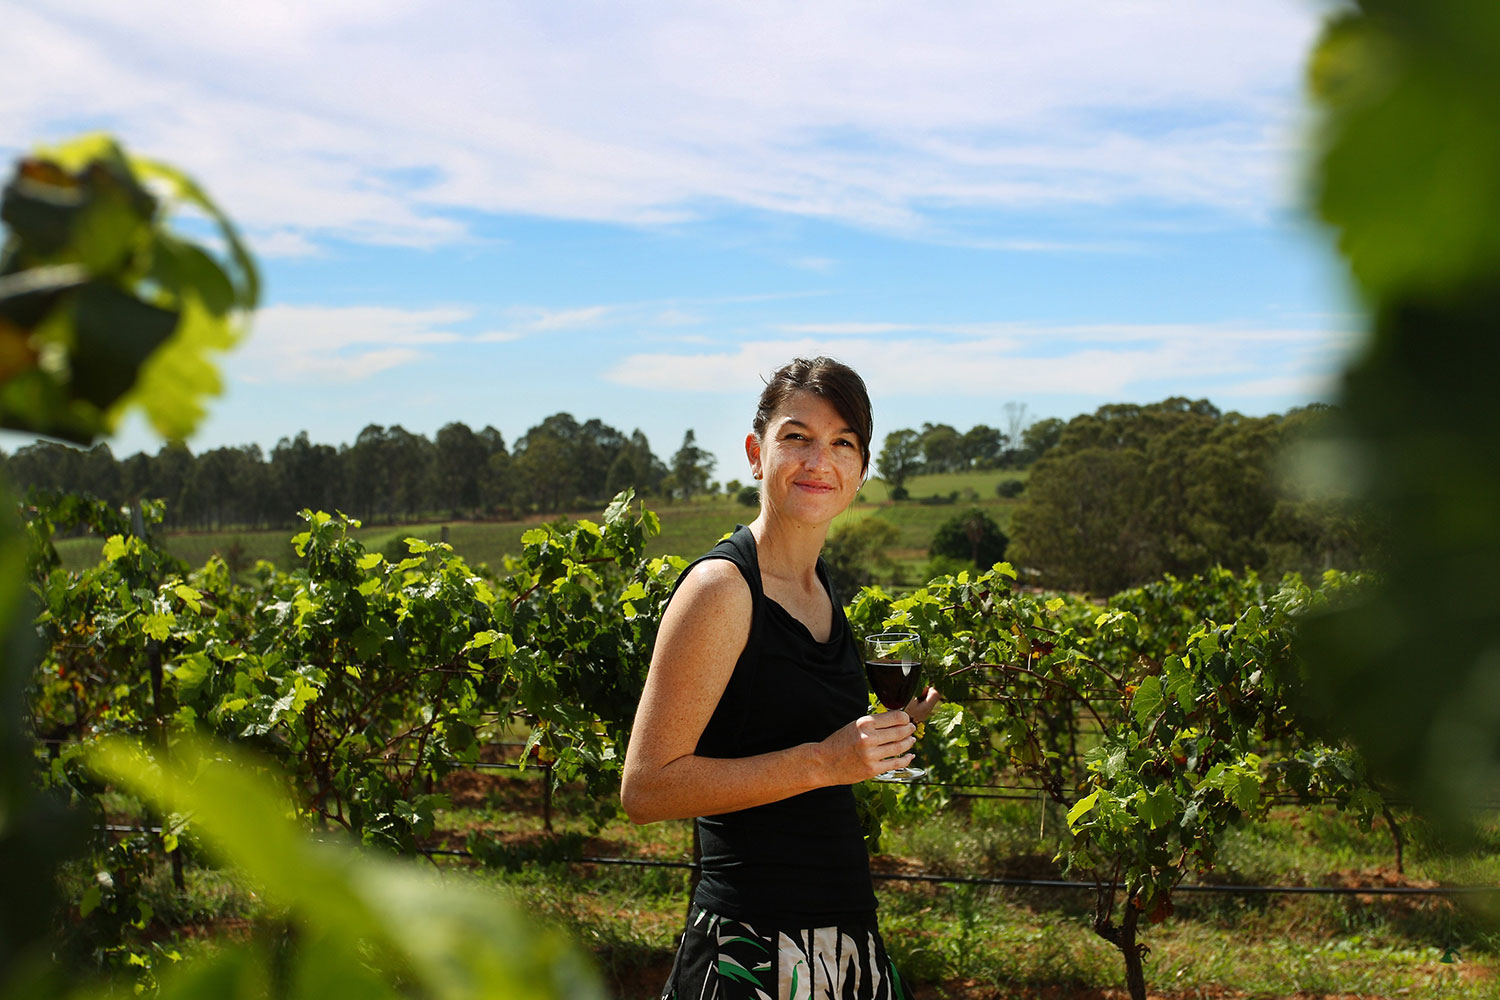 Enjoy structured wine tastings at three wineries hunter valley wine tour